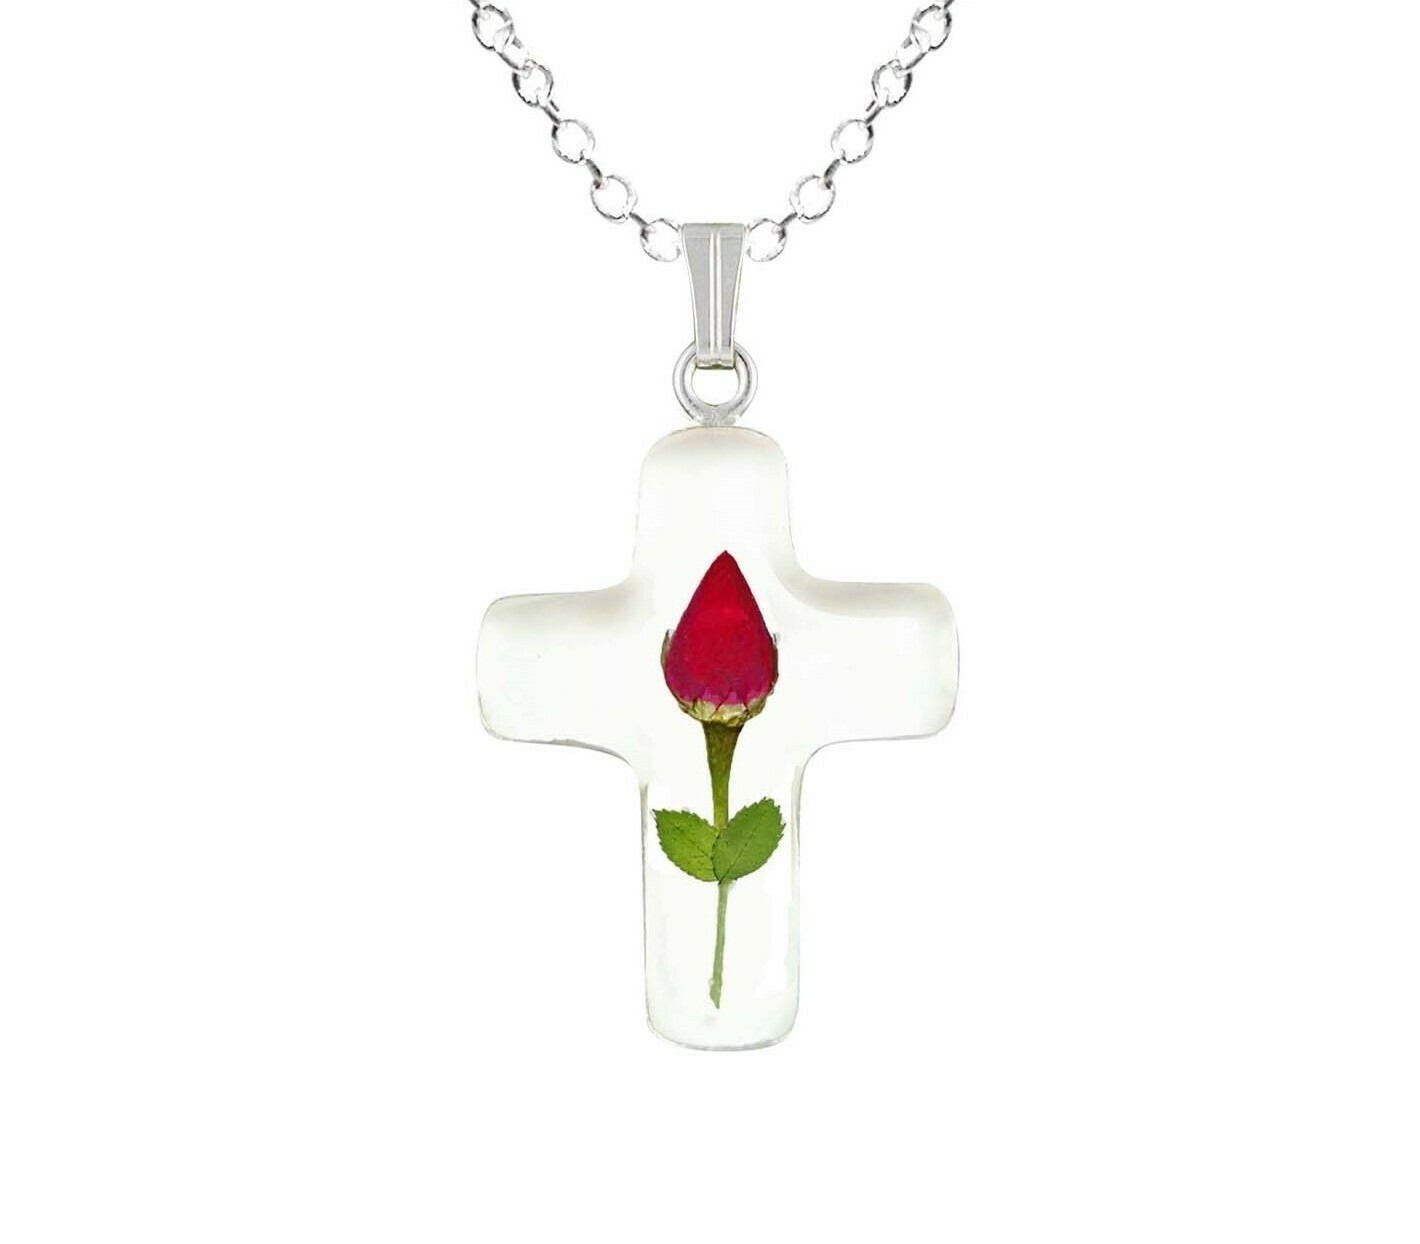 Rose Necklace, Small Cross, White Background